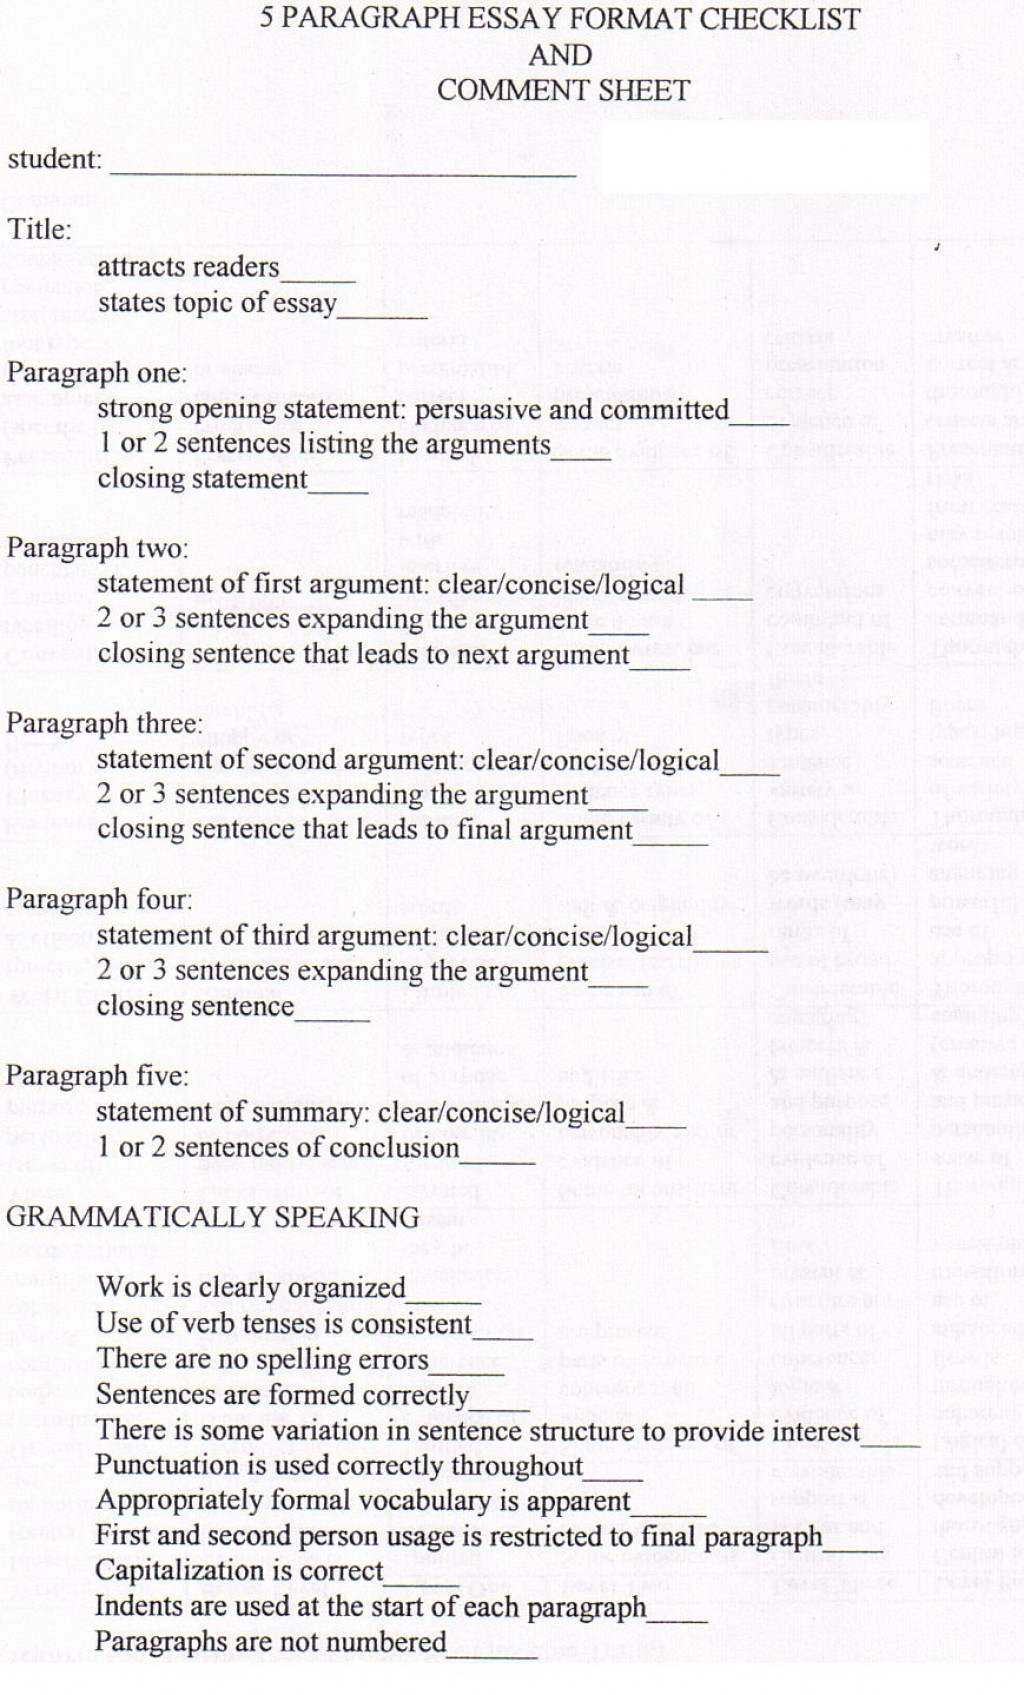 008 Argumentative Essay About Bullying 5paragraphchecklist Magnificent Should Be Avoided Persuasive Brainly In The Philippines Large